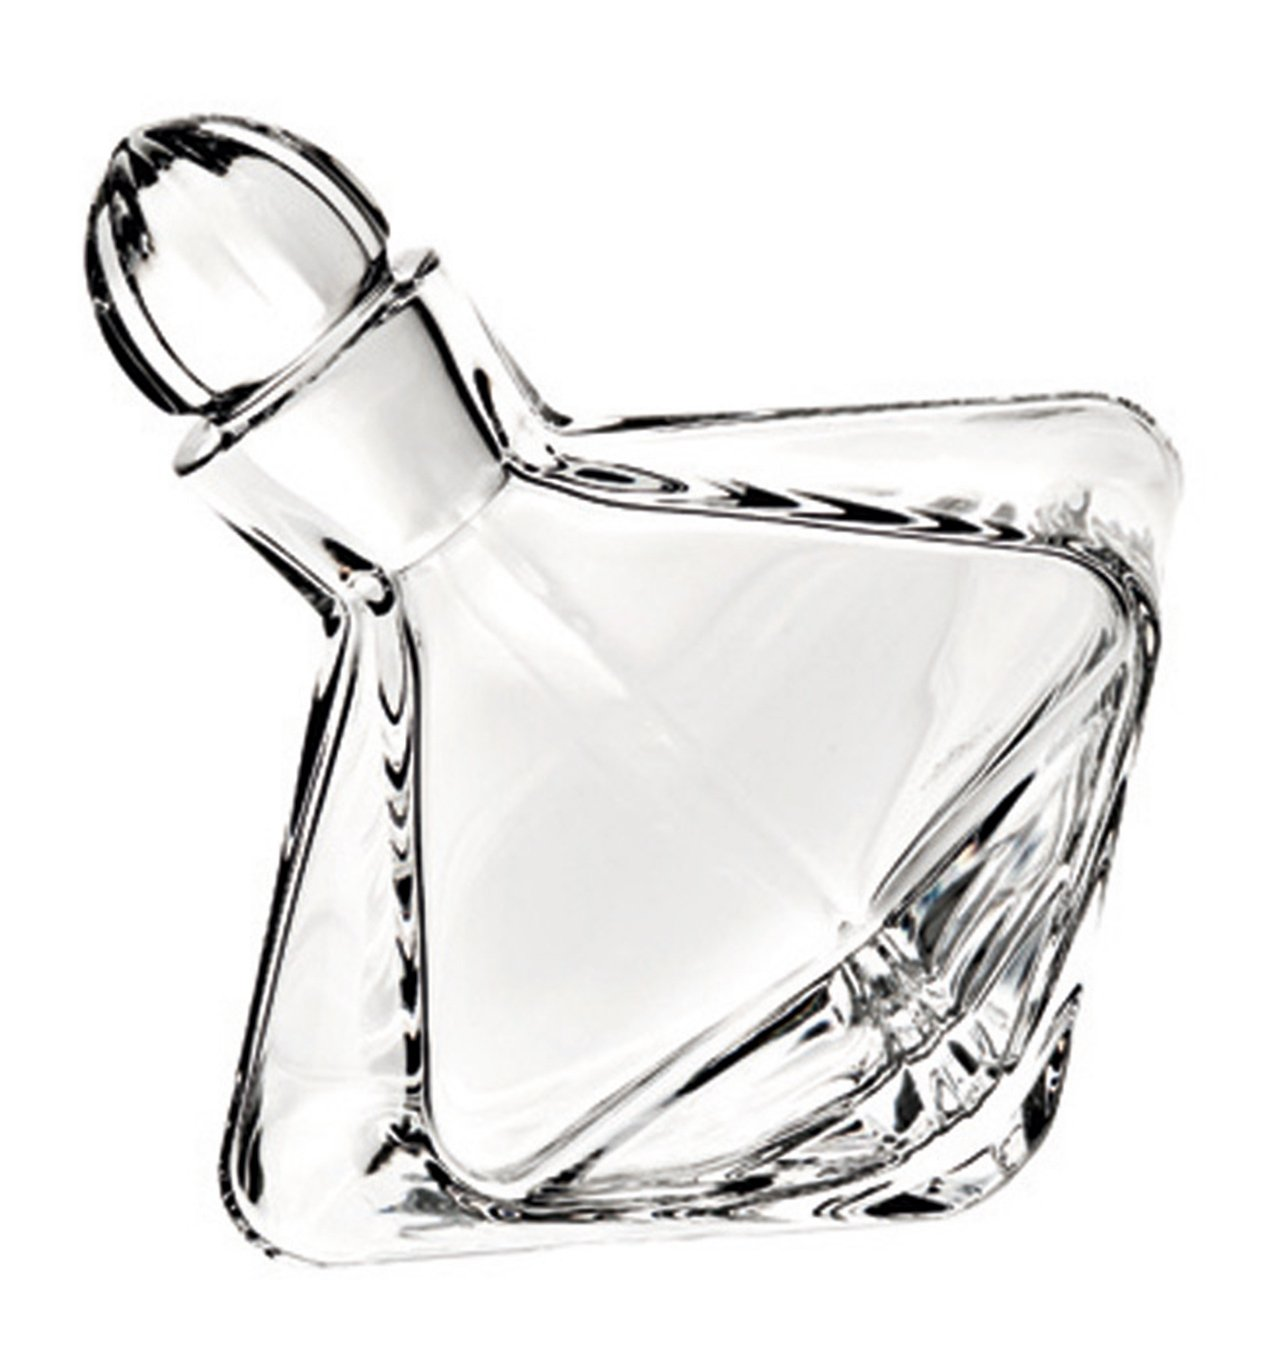 VISTA ALEGRE - Carroussel - Whisky Decanter (Ref # 48000017) Handmade Crystal by Unknown